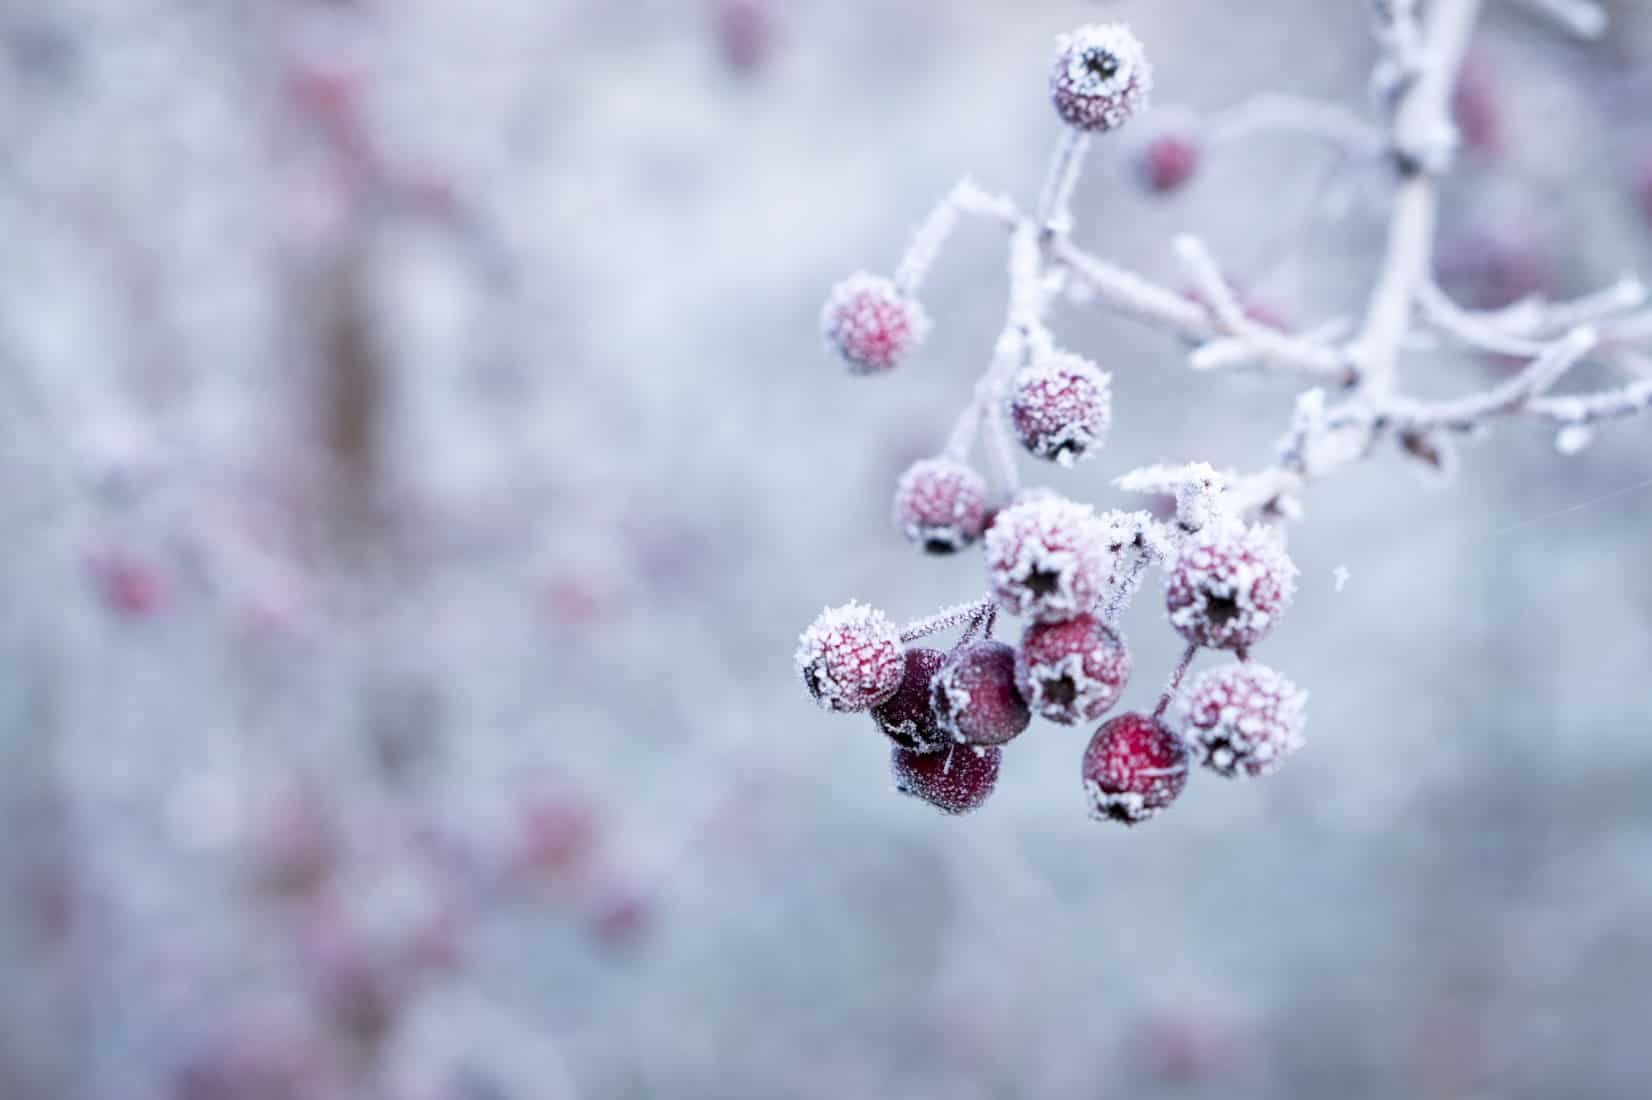 Berries covered in frost